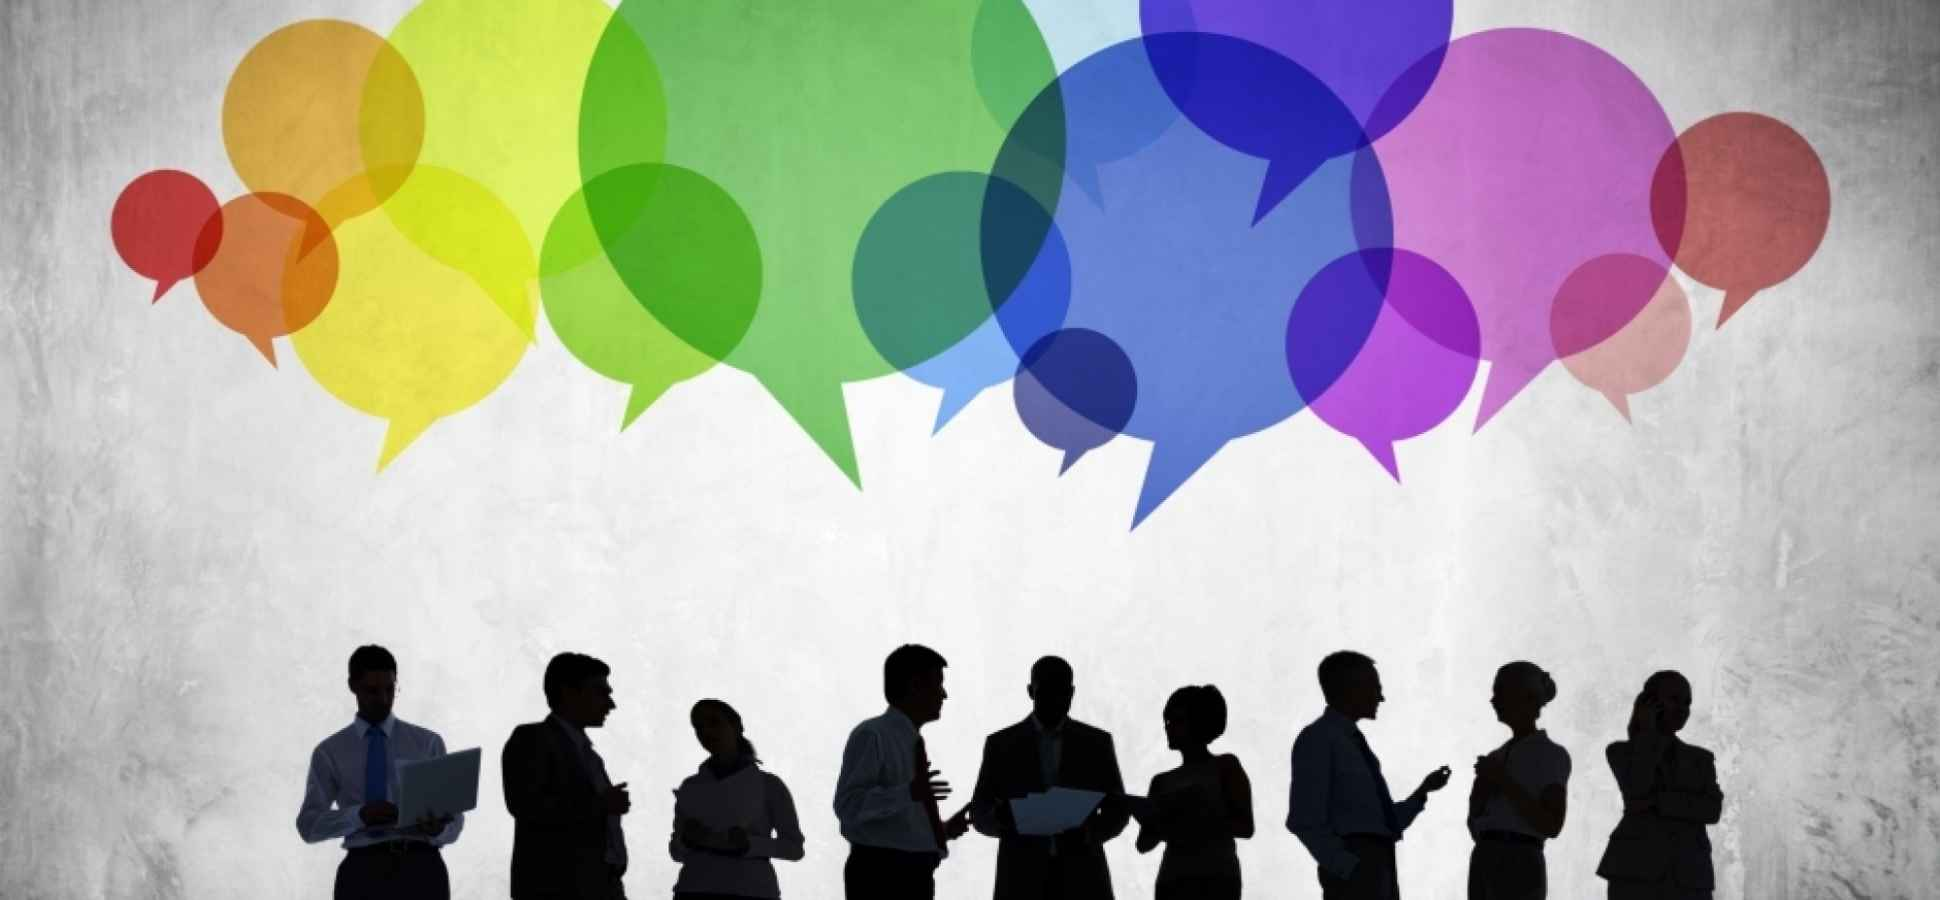 6 Essential Phrases Used by Top Leaders